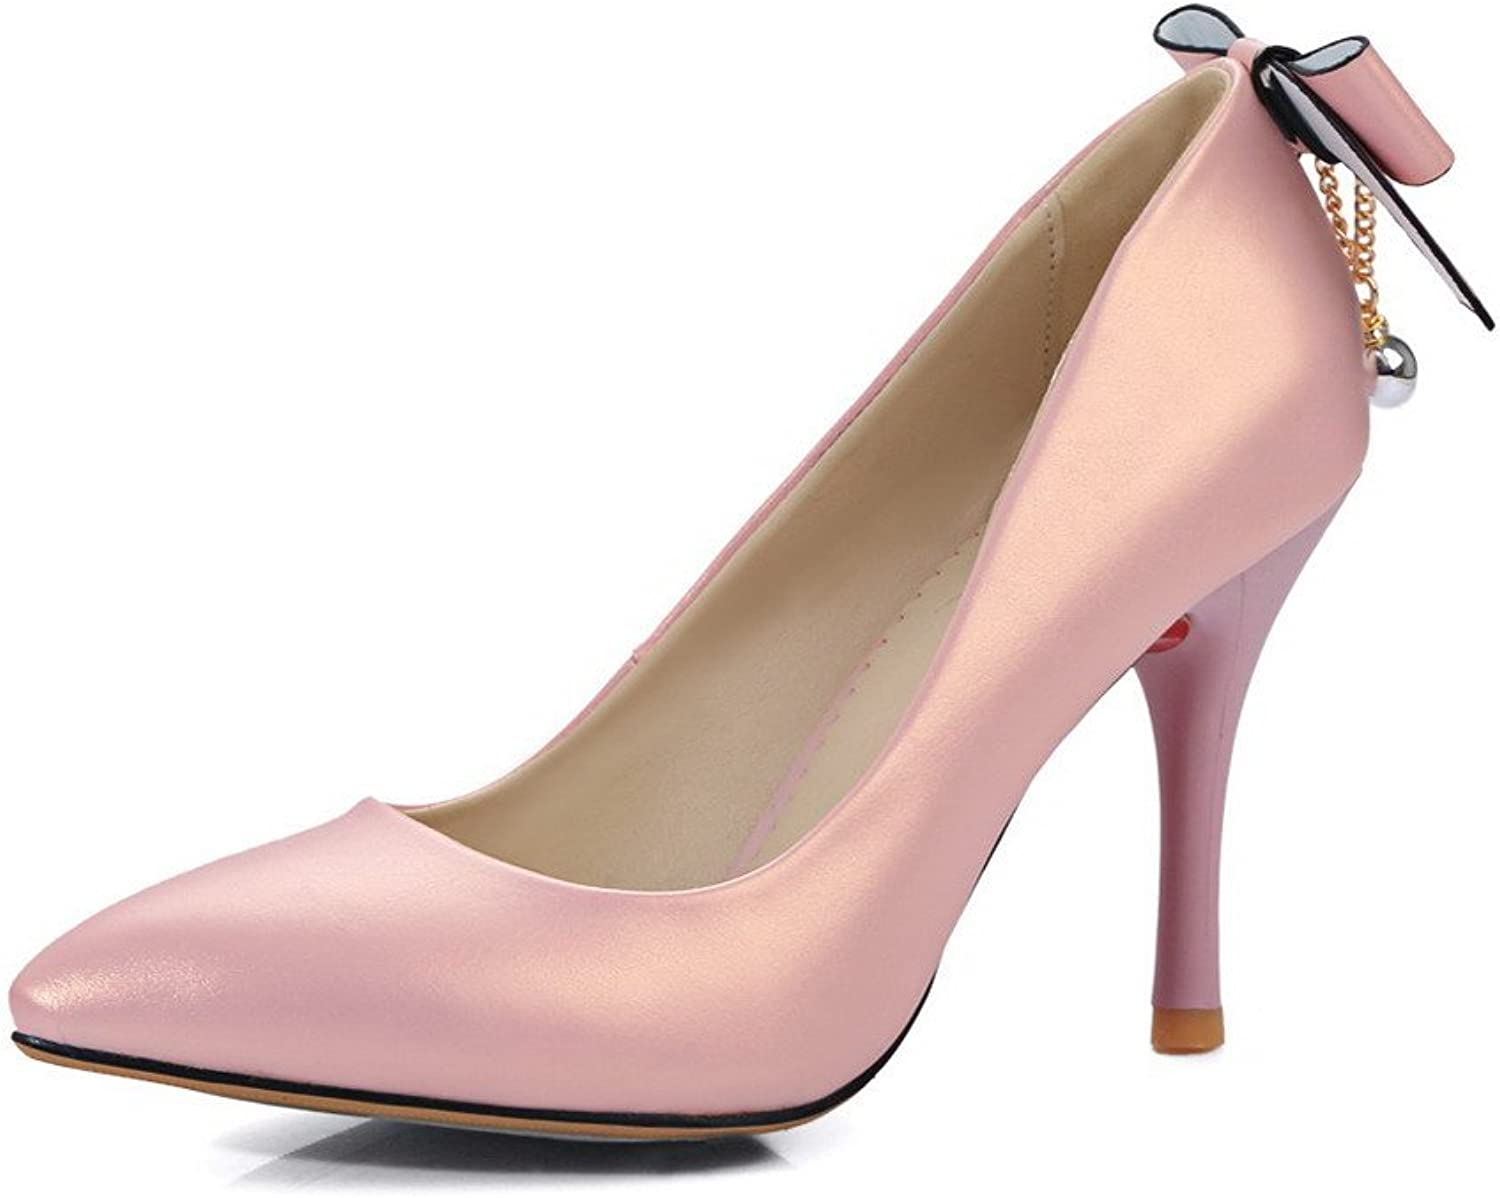 AllhqFashion Women's High Heels Solid Pull On Pointed Closed Toe Pumps-shoes